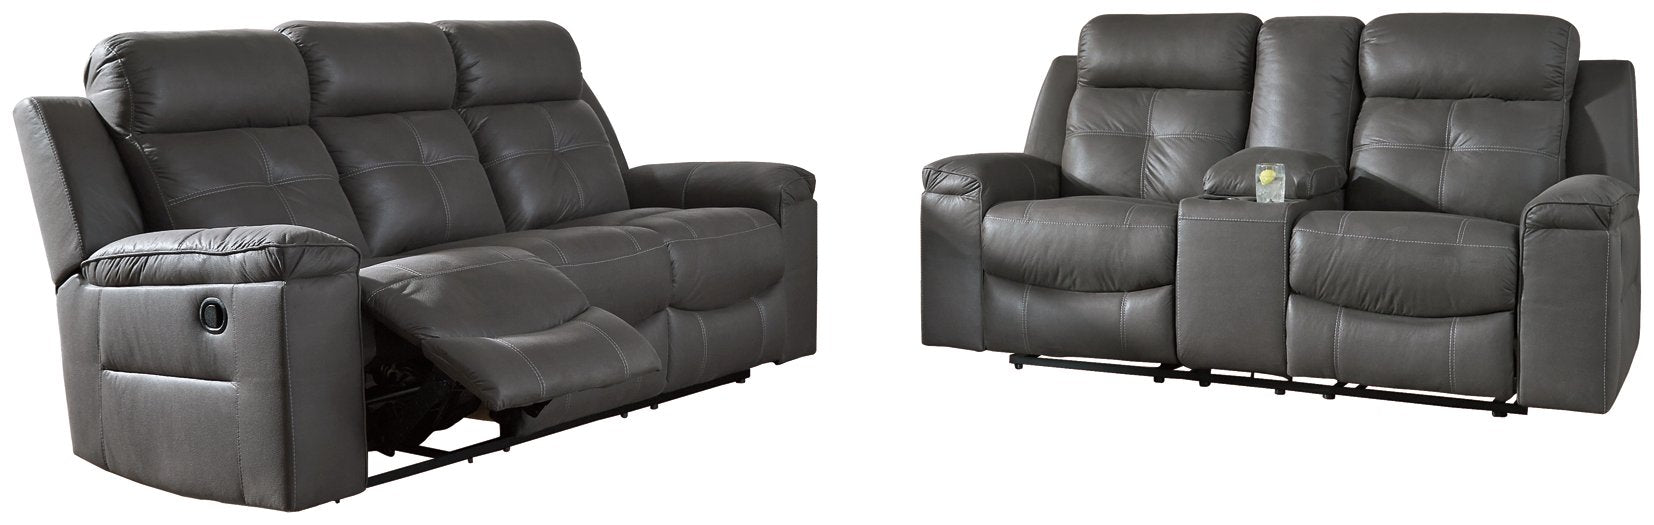 Jesolo Signature Design Family Spaces 2-Piece Living Room Set